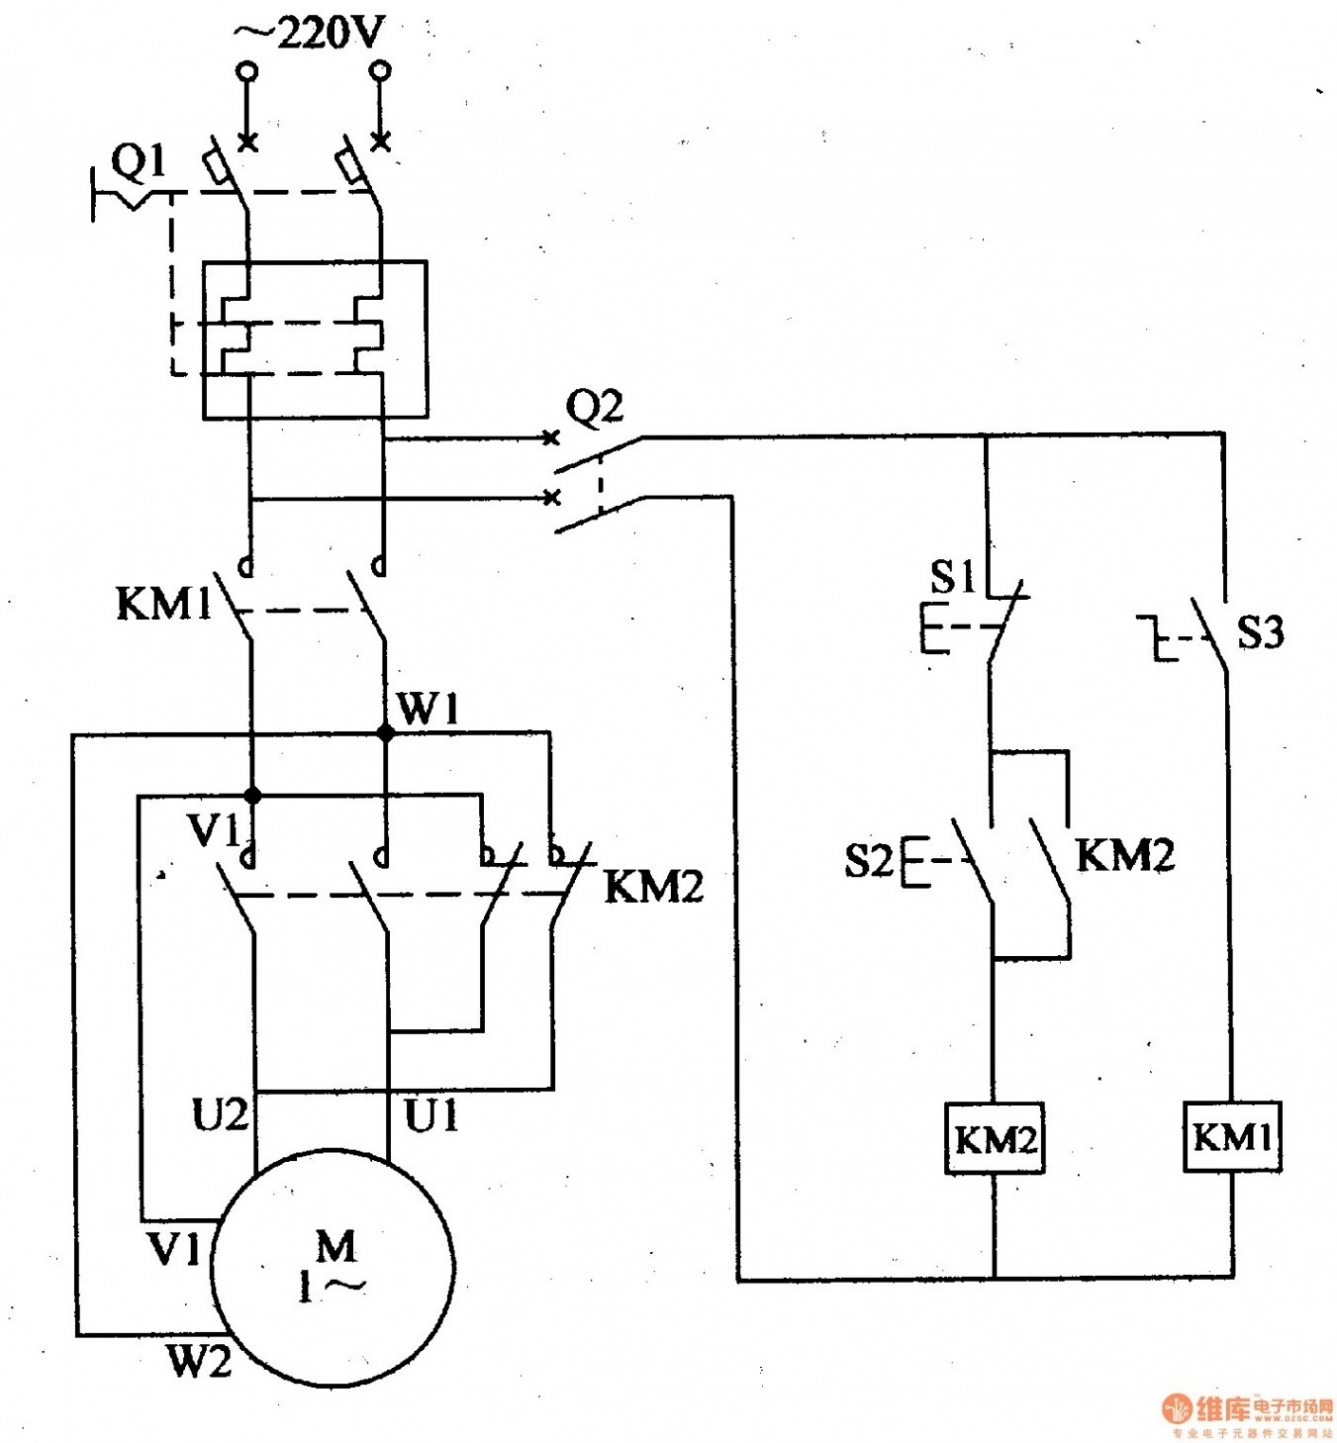 wiring diagram 220 volt schematic